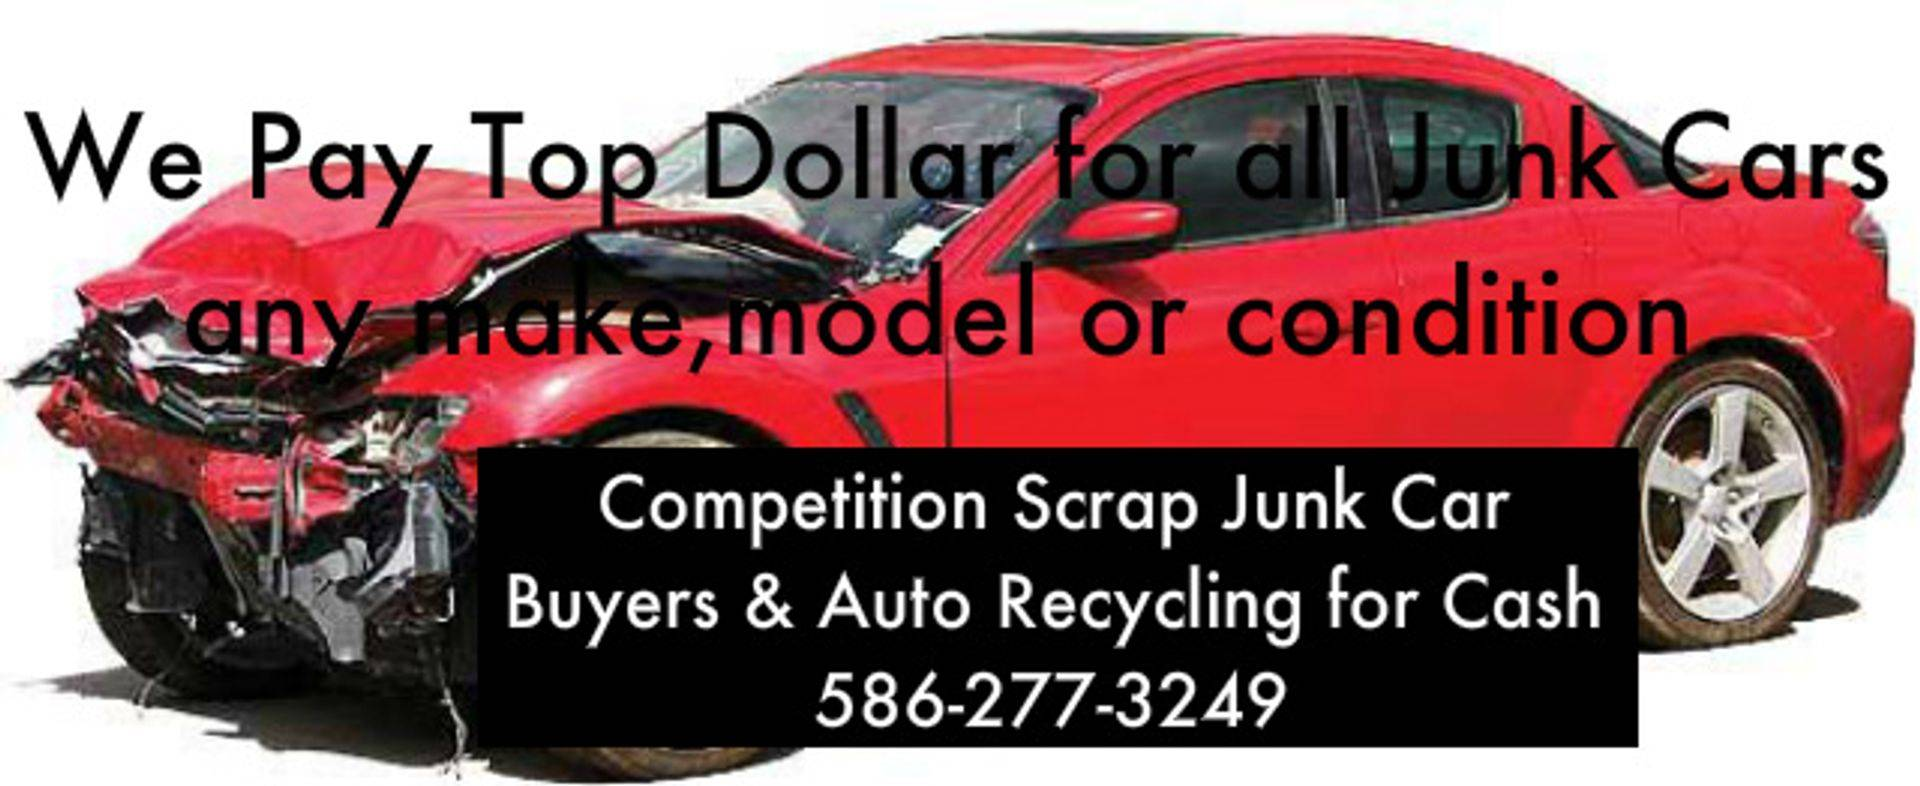 scrap car, junk car, broken vehicles